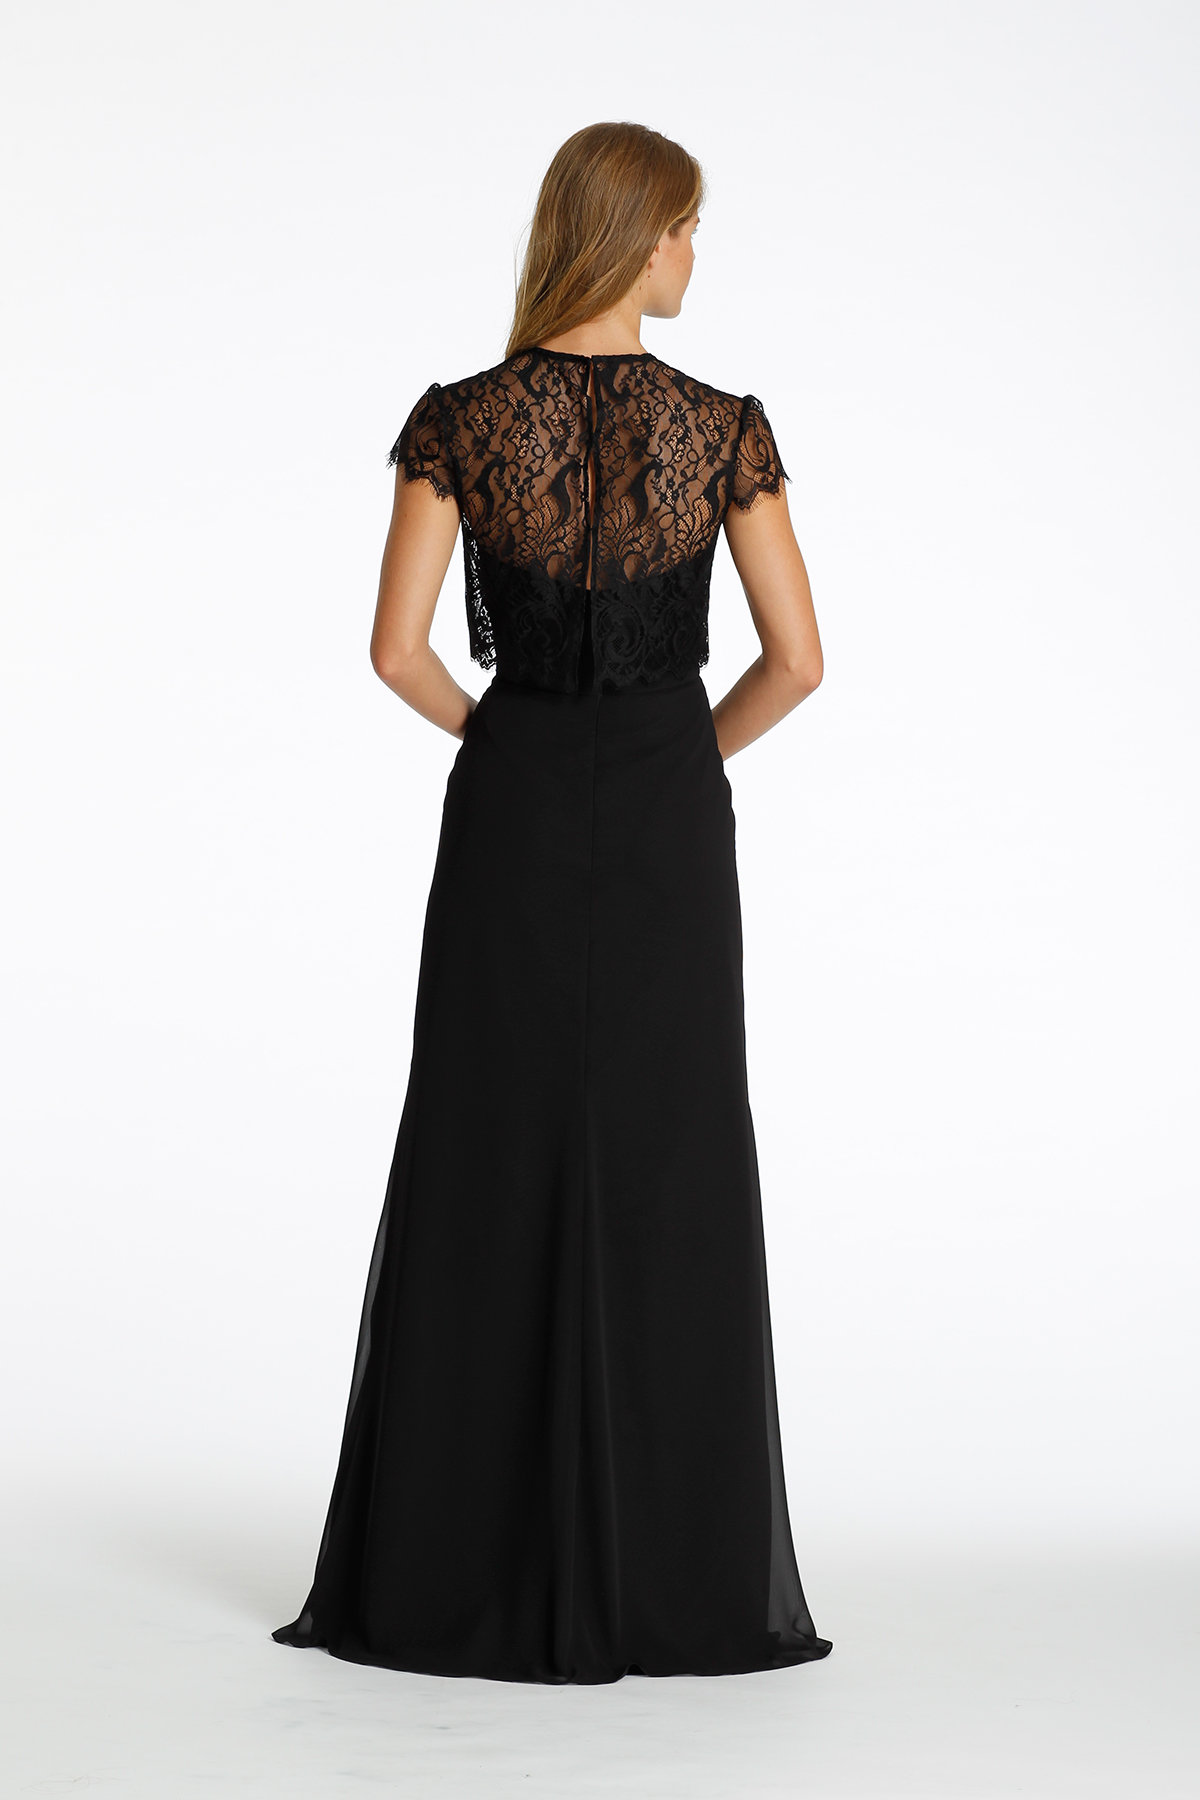 Back of style 5621 by Hayley Paige Bridesmaids showing lace jacket opening